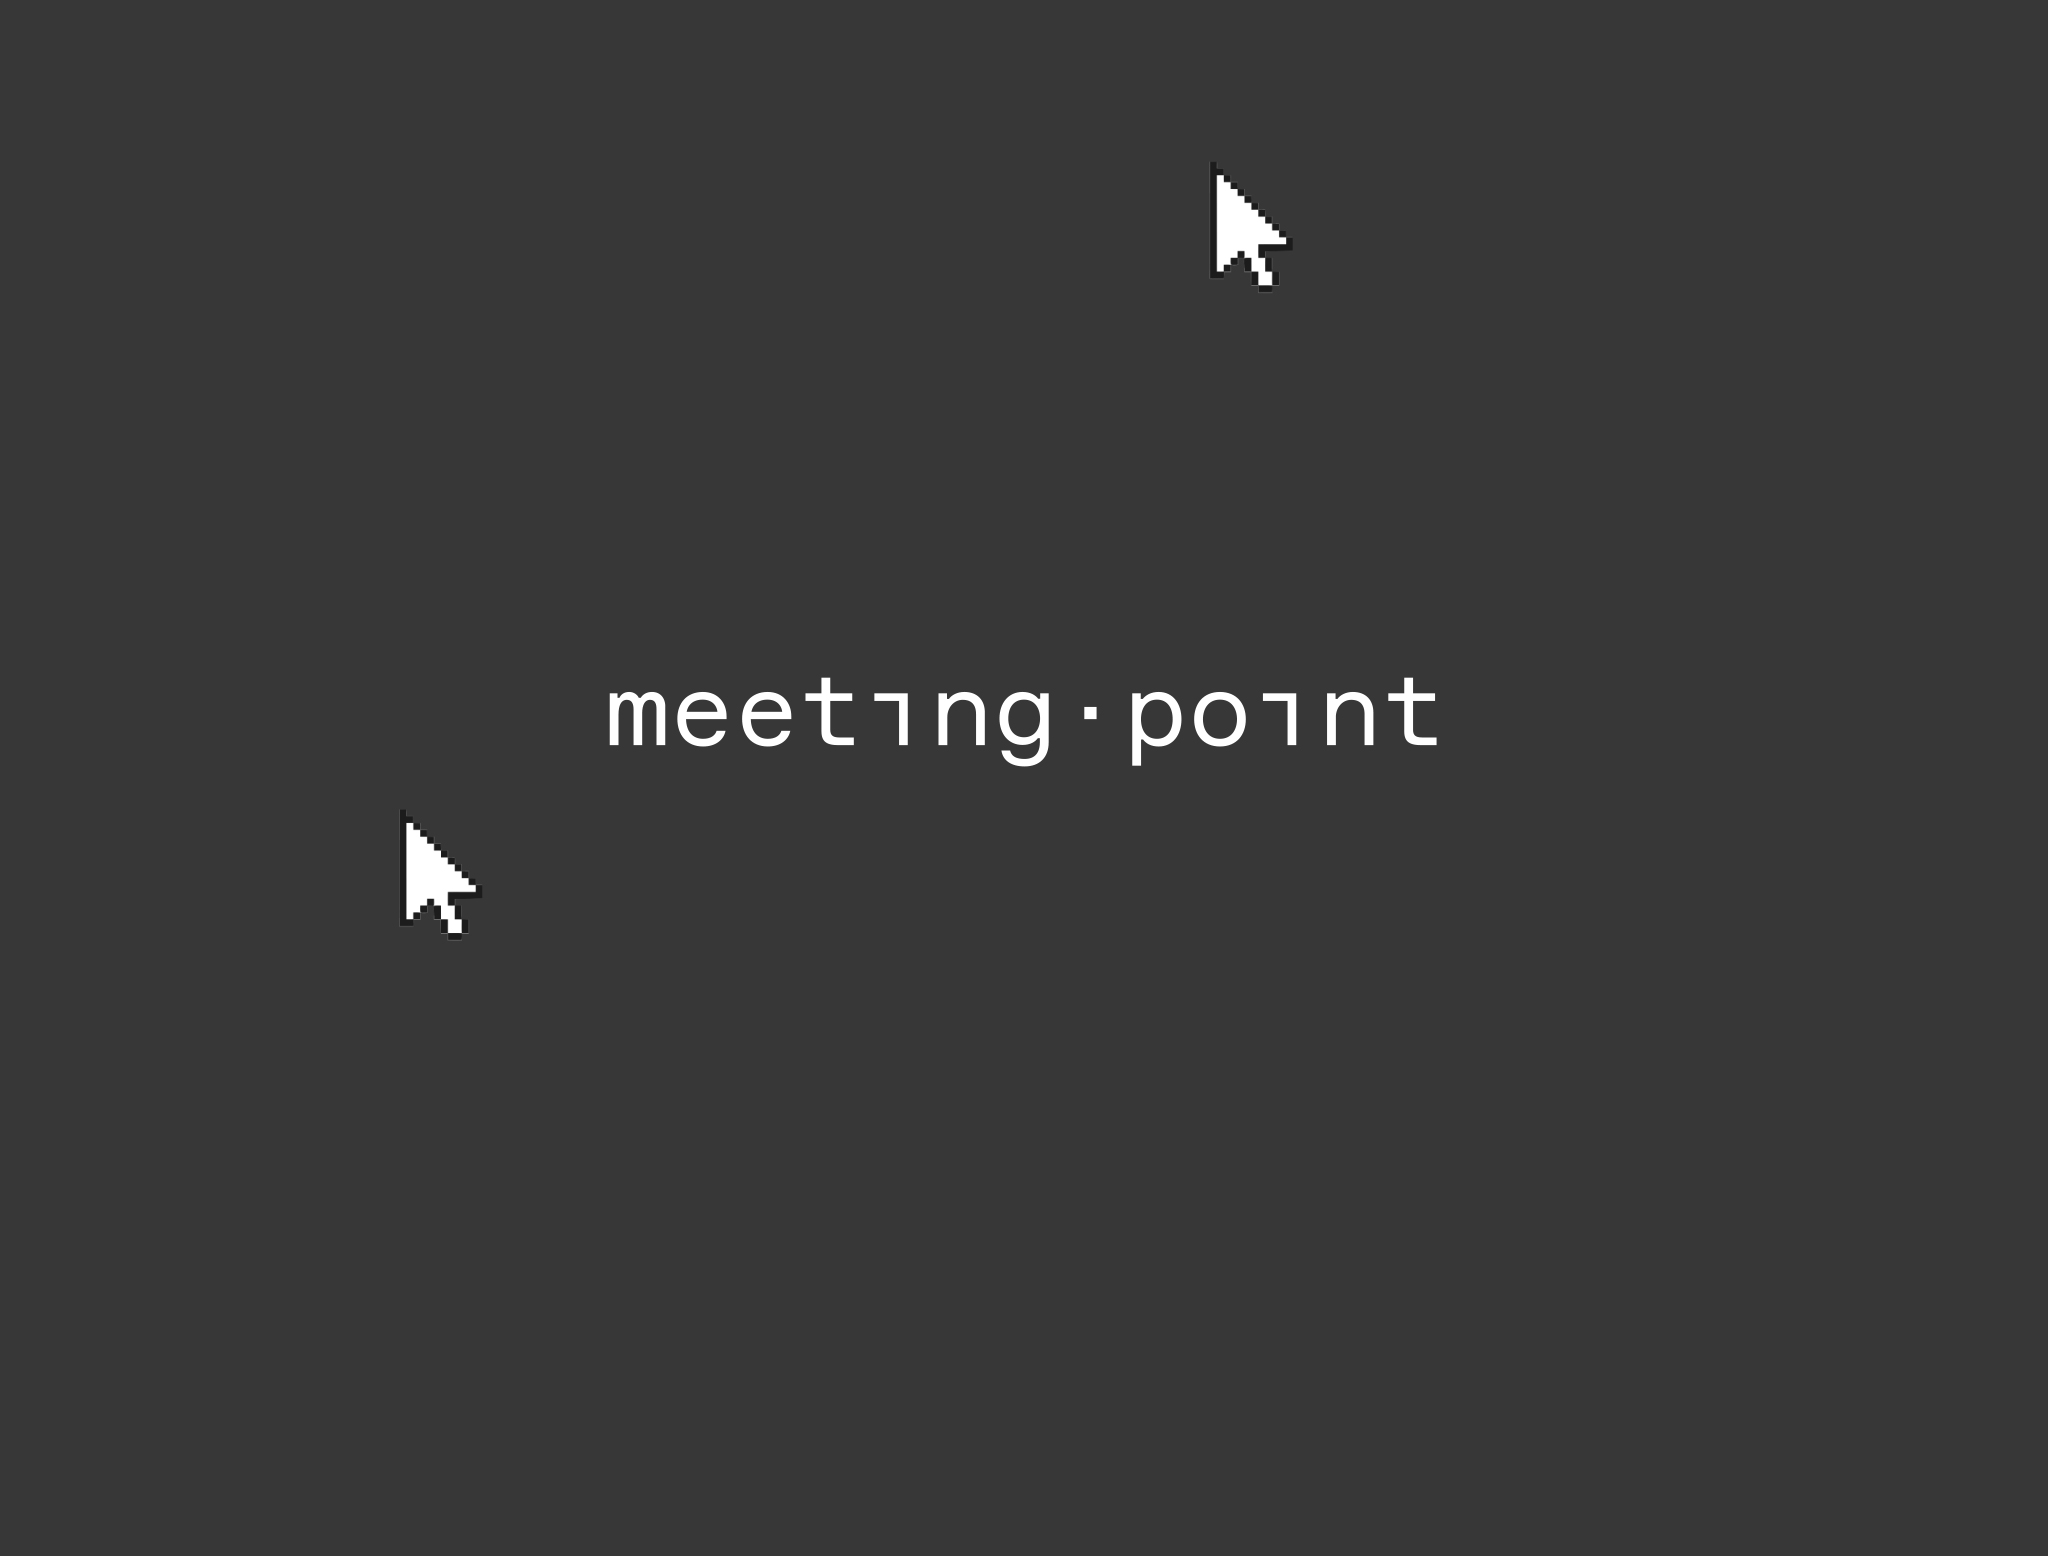 meeting.point